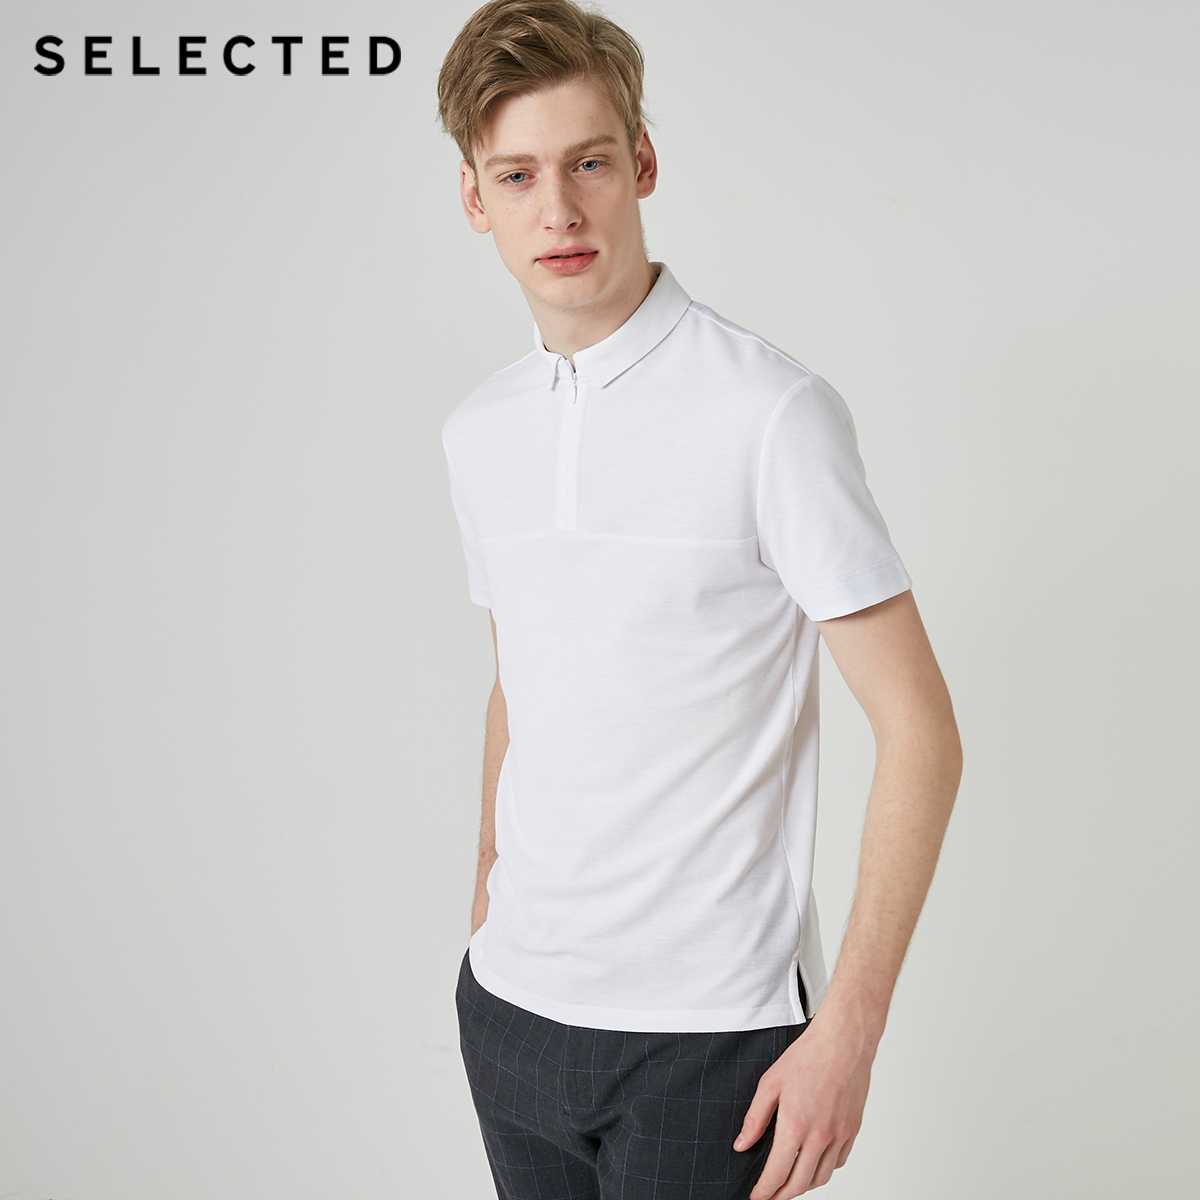 SELECTED Men's Cotton Turn-down Collar Zipped Slim Fit Poloshirt S|419206524